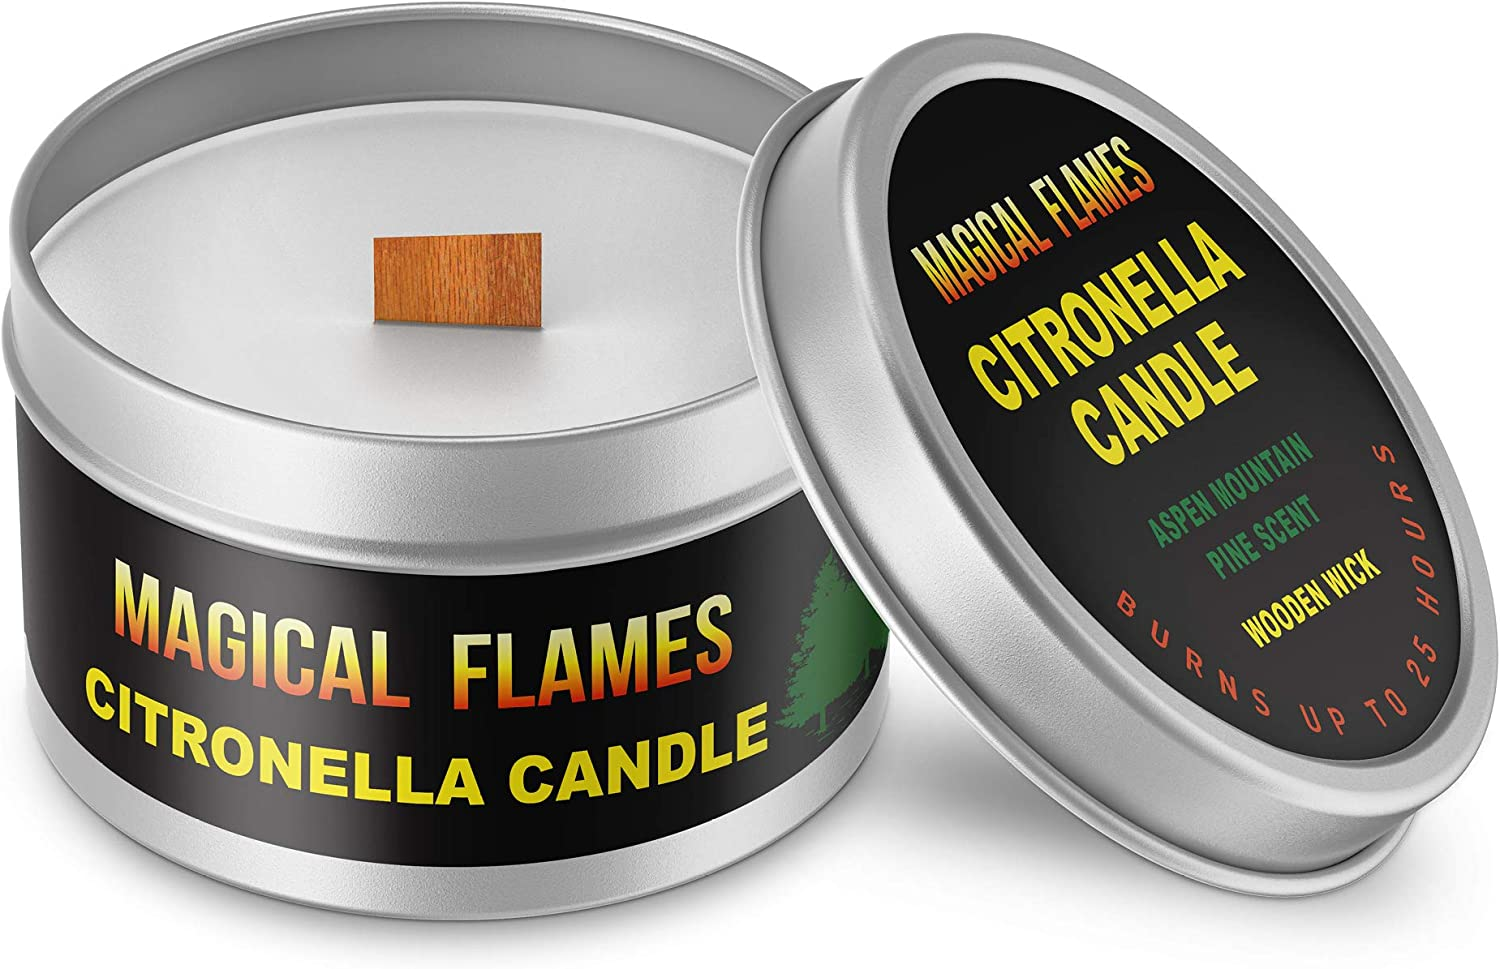 Magical Flames Citronella Candle (1 Pack) Indoor/ Outdoor, 6 oz Burns up to 25 Hours, Wooden Crackle Wick